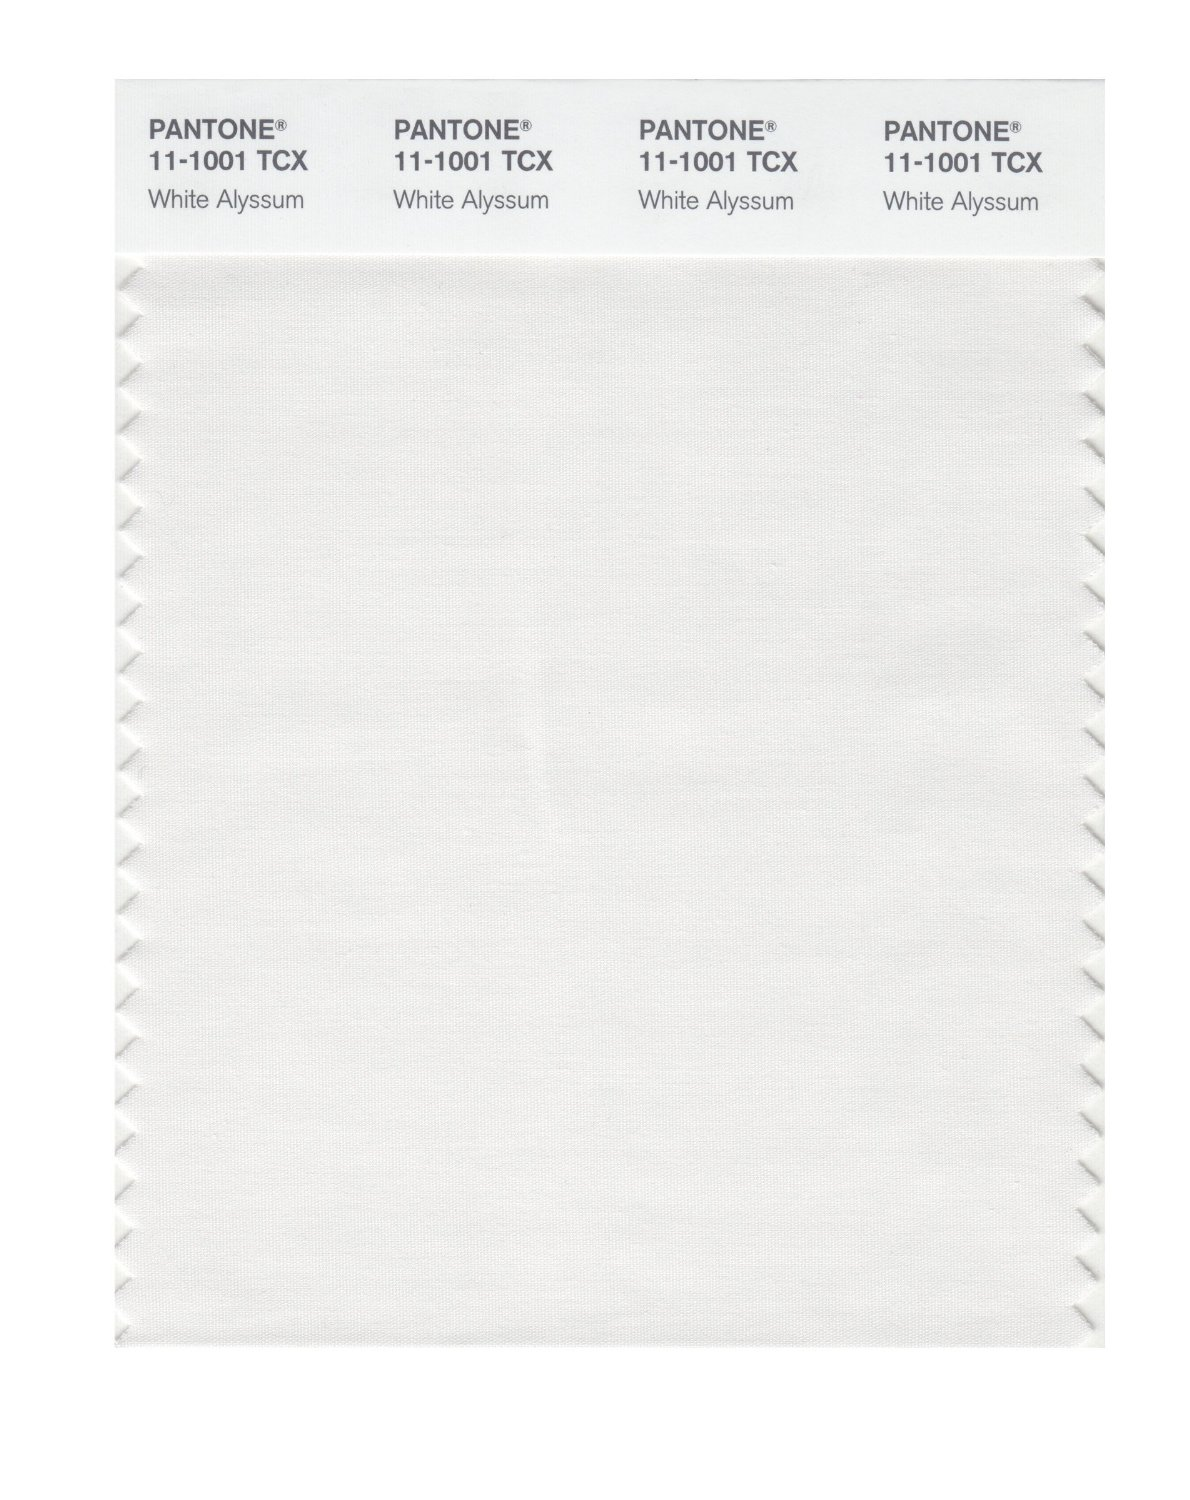 Pantone Smart Swatch 11-1001 White Alyssum